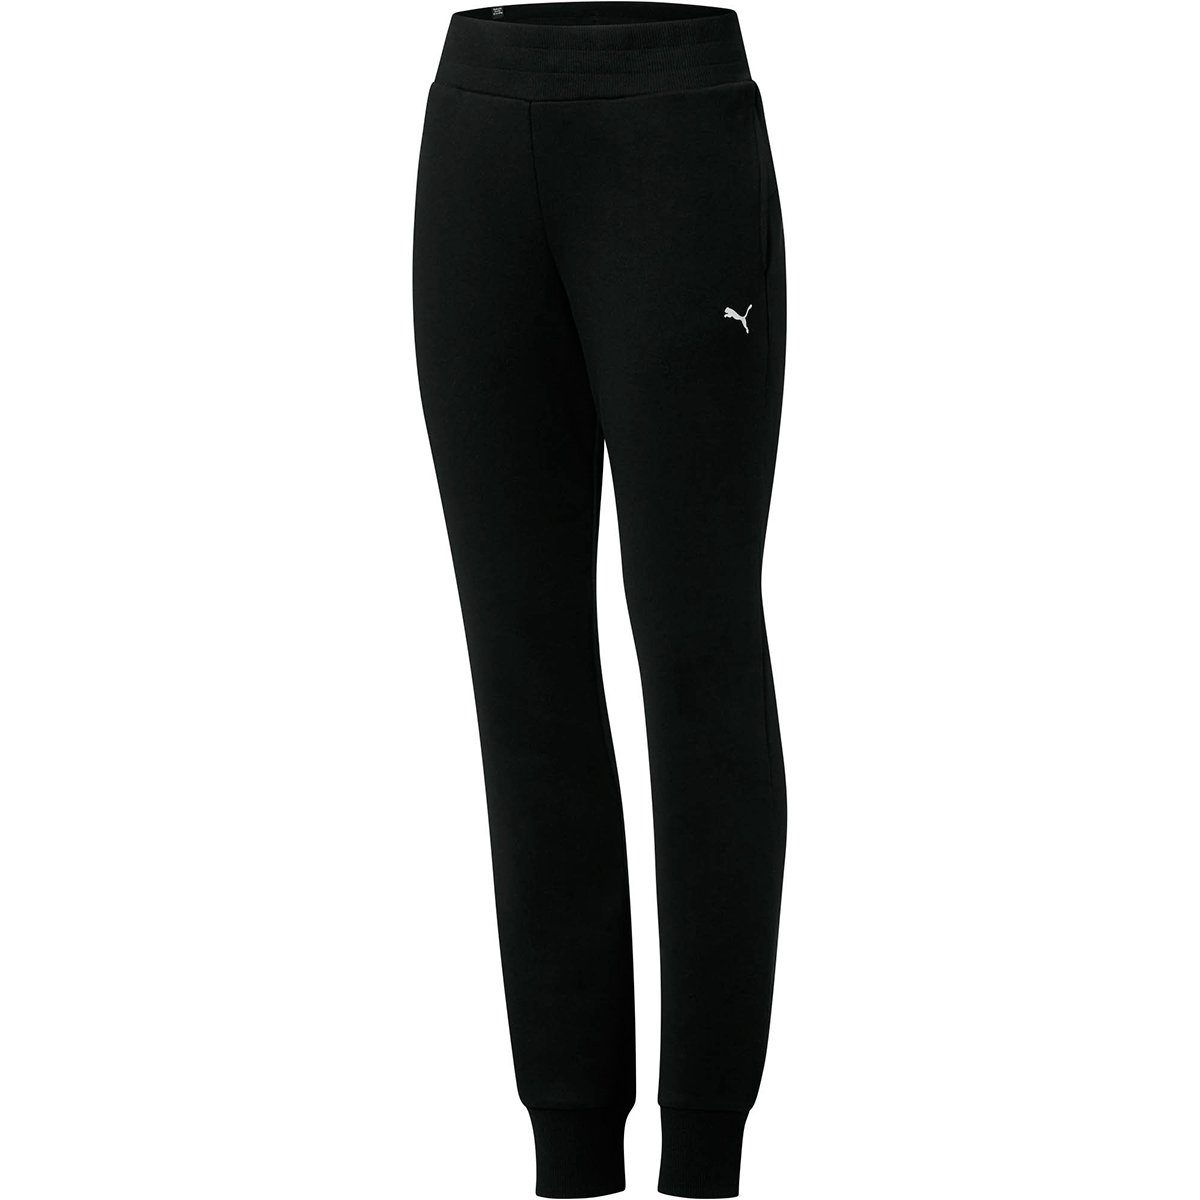 Puma Women's Essential Fleece Sweatpants - Black, S